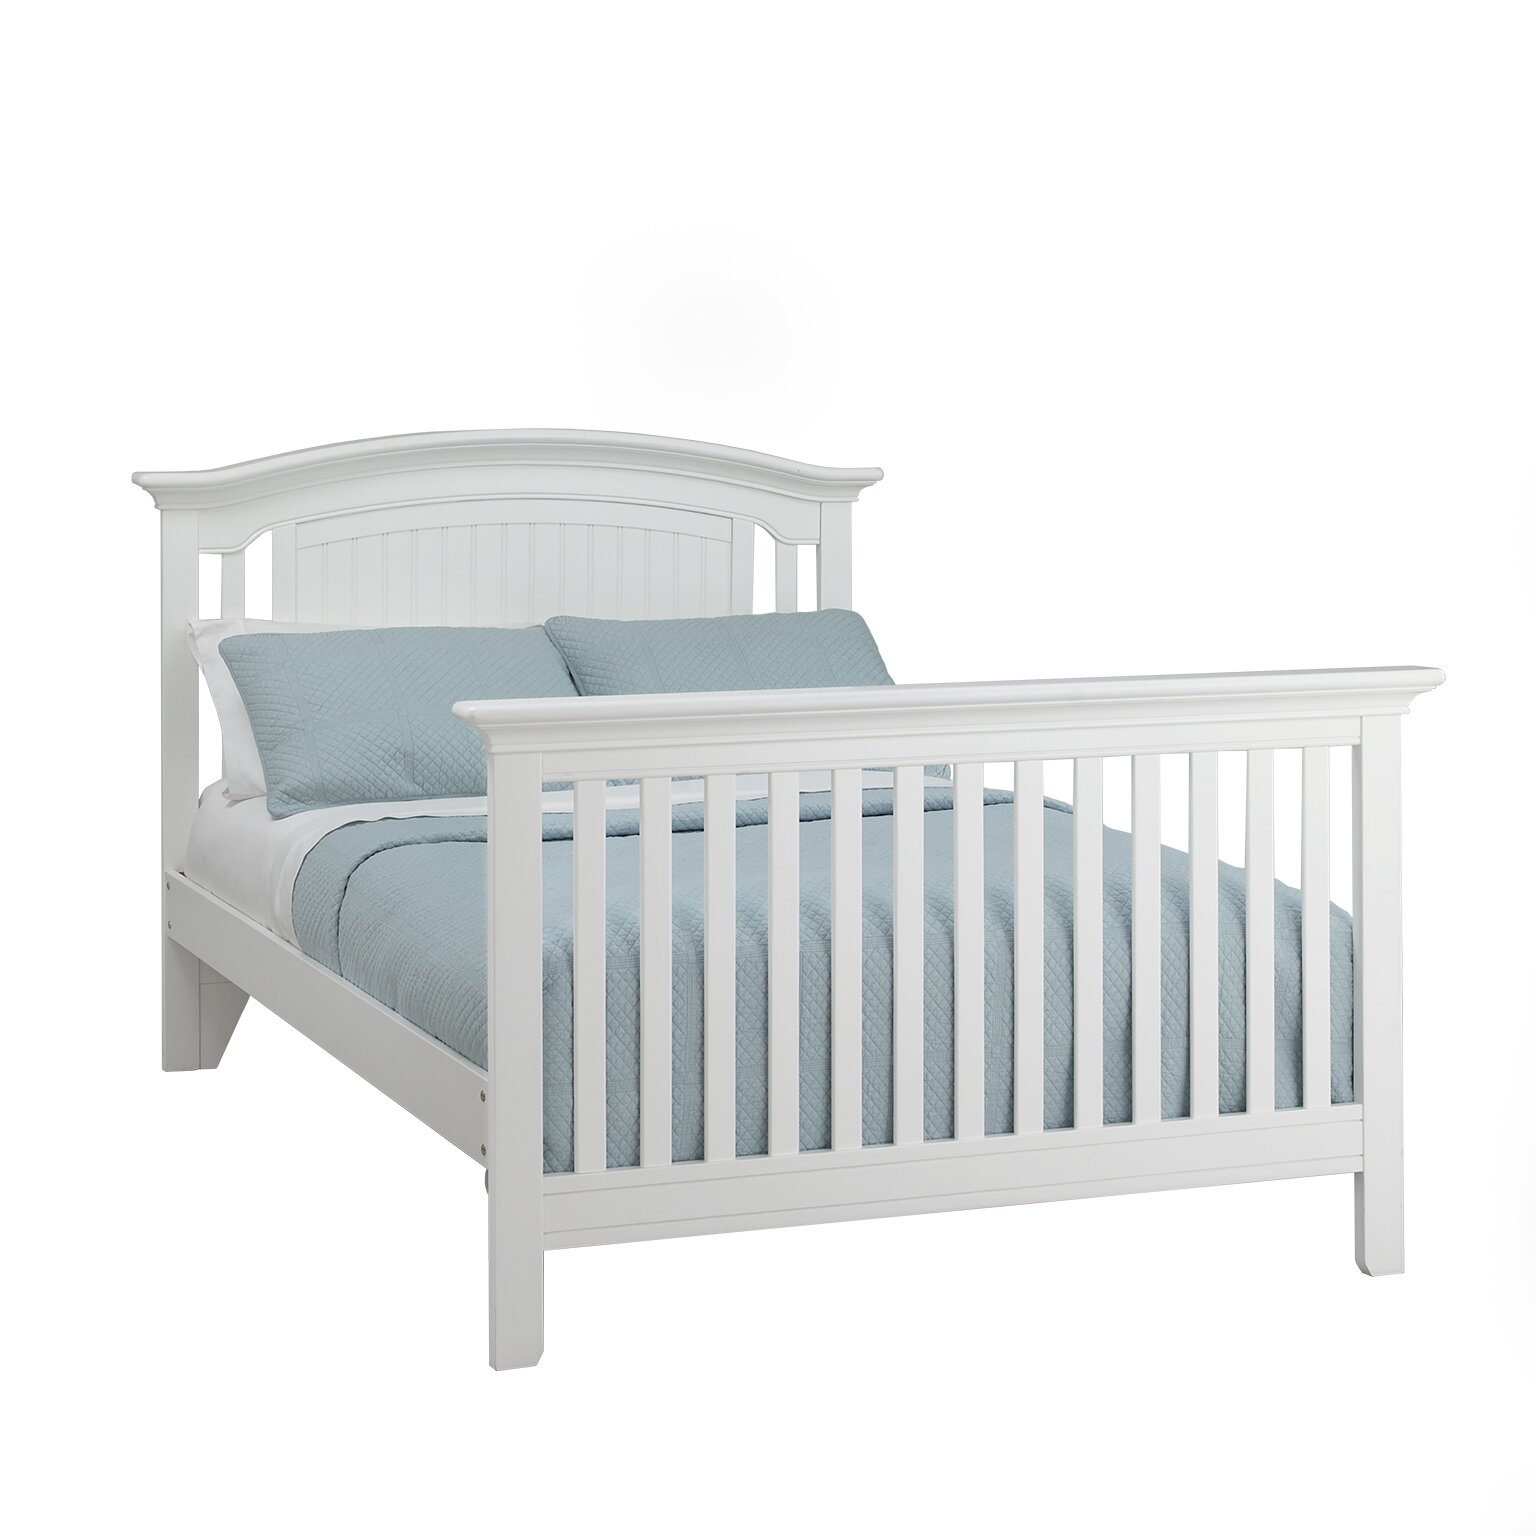 Suite Bebe Winchester Lifetime 4 In 1 Convertible Crib